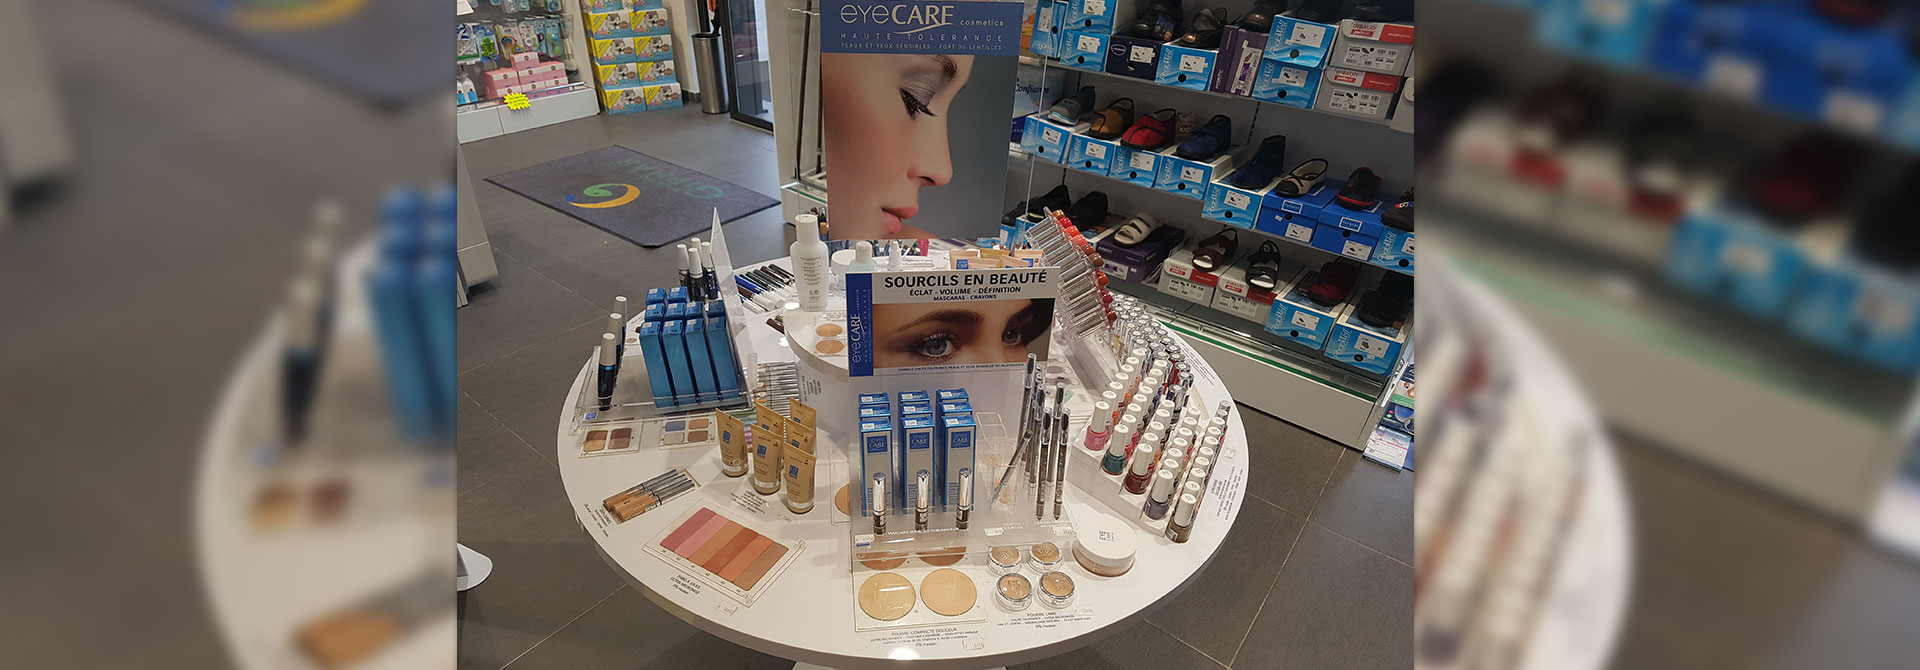 maquillage-eyecare-rousies-assevent-maubeuge